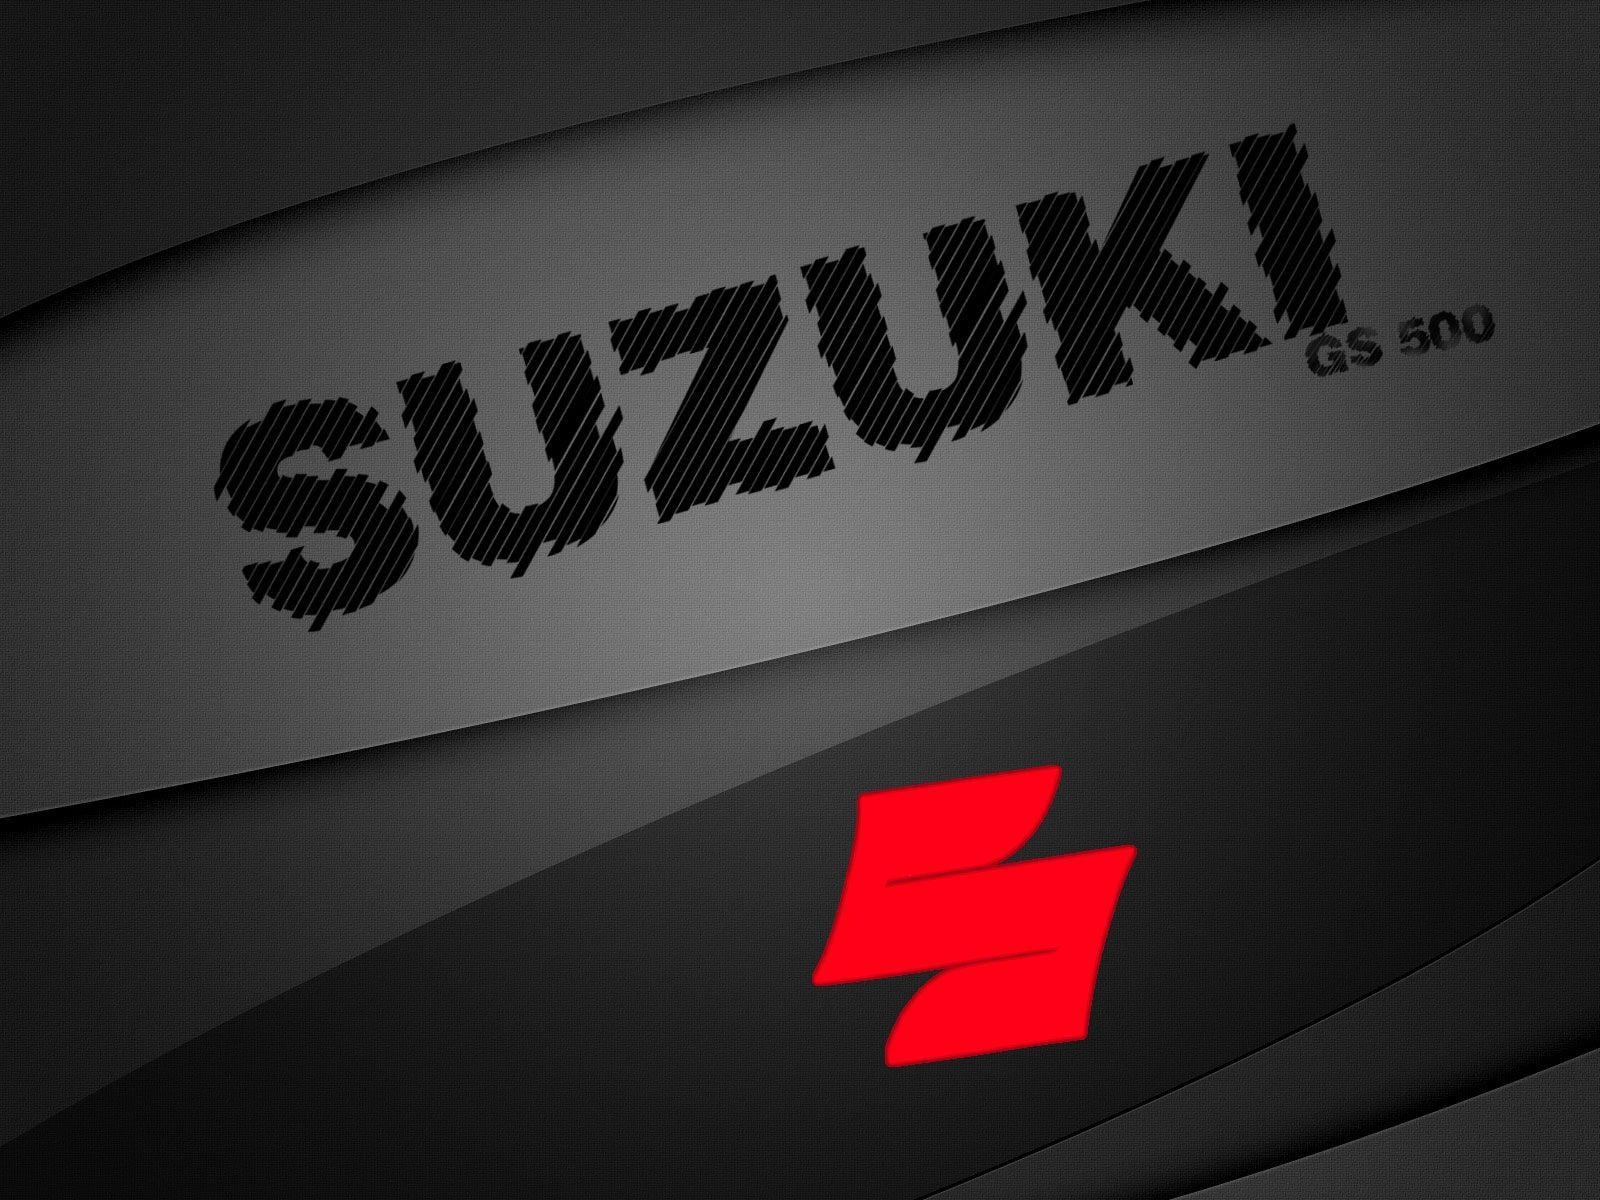 Suzuki Wallpapers Group with 54 items